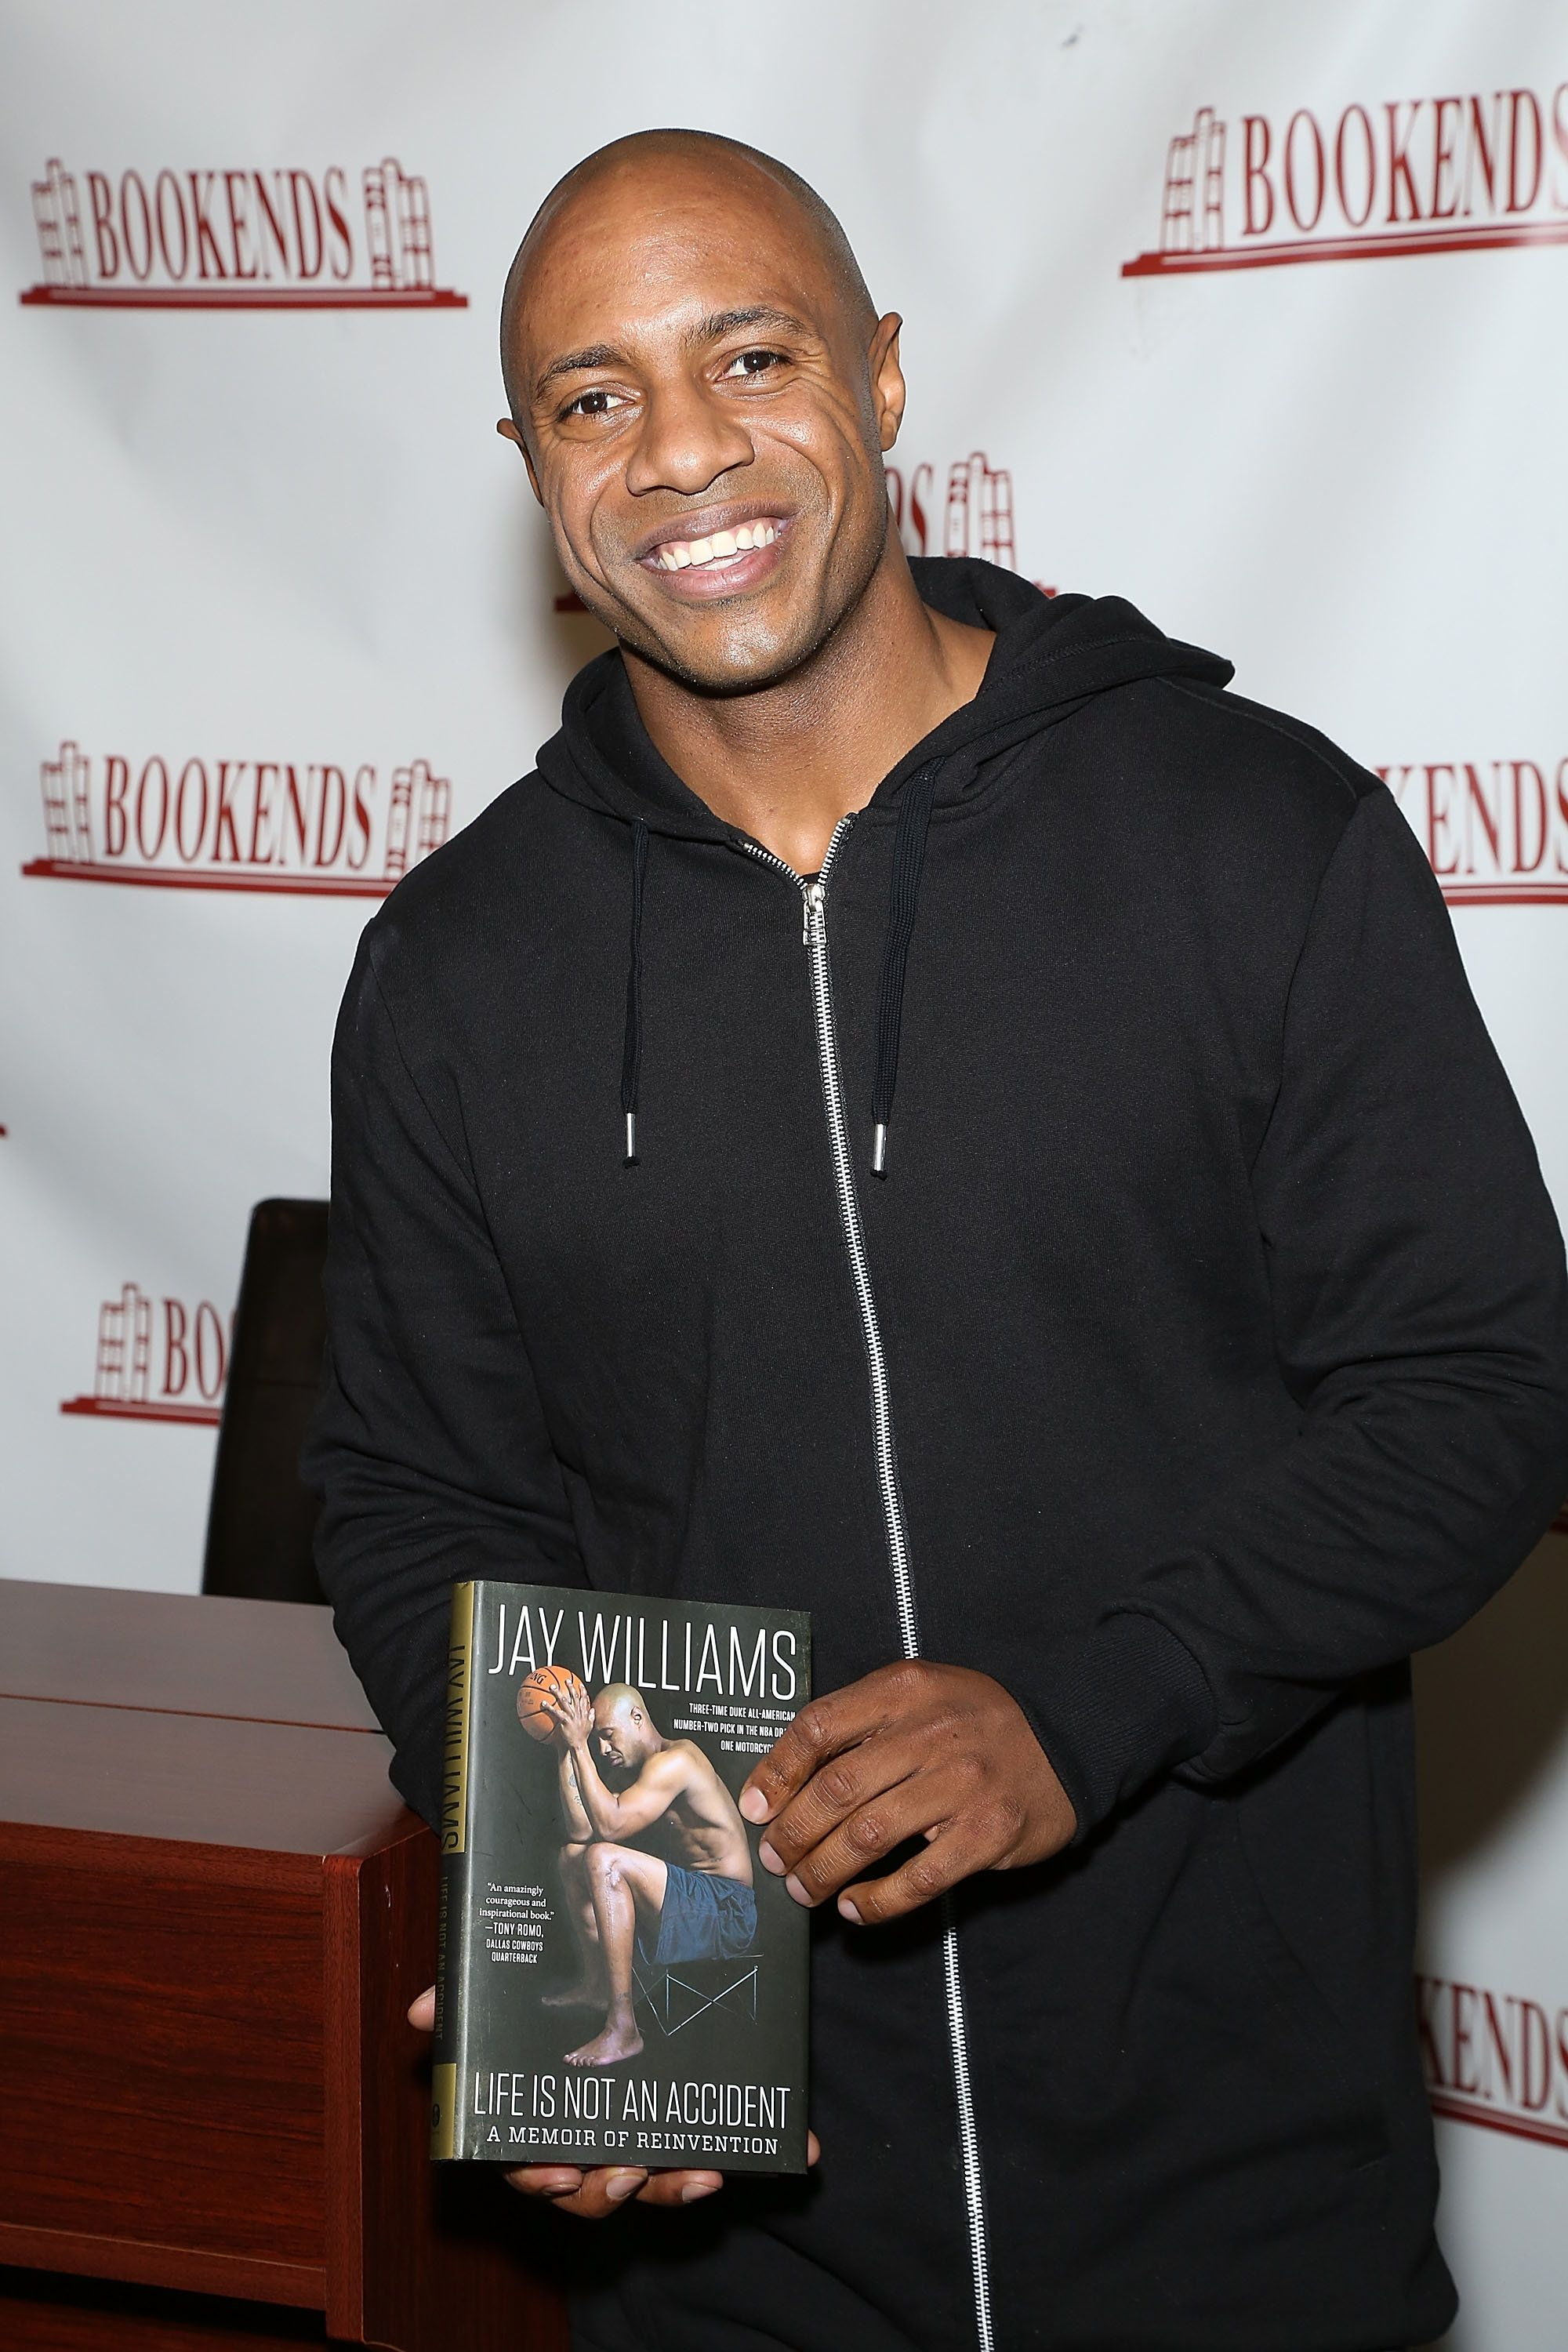 RIDGEWOOD, NEW JERSEY - JANUARY 26:  Jay Williams signs copies of his new book 'Life Is Not An Accident' at Bookends Bookstore on January 26, 2016 in Ridgewood, New Jersey.  (Photo by Manny Carabel/Getty Images)